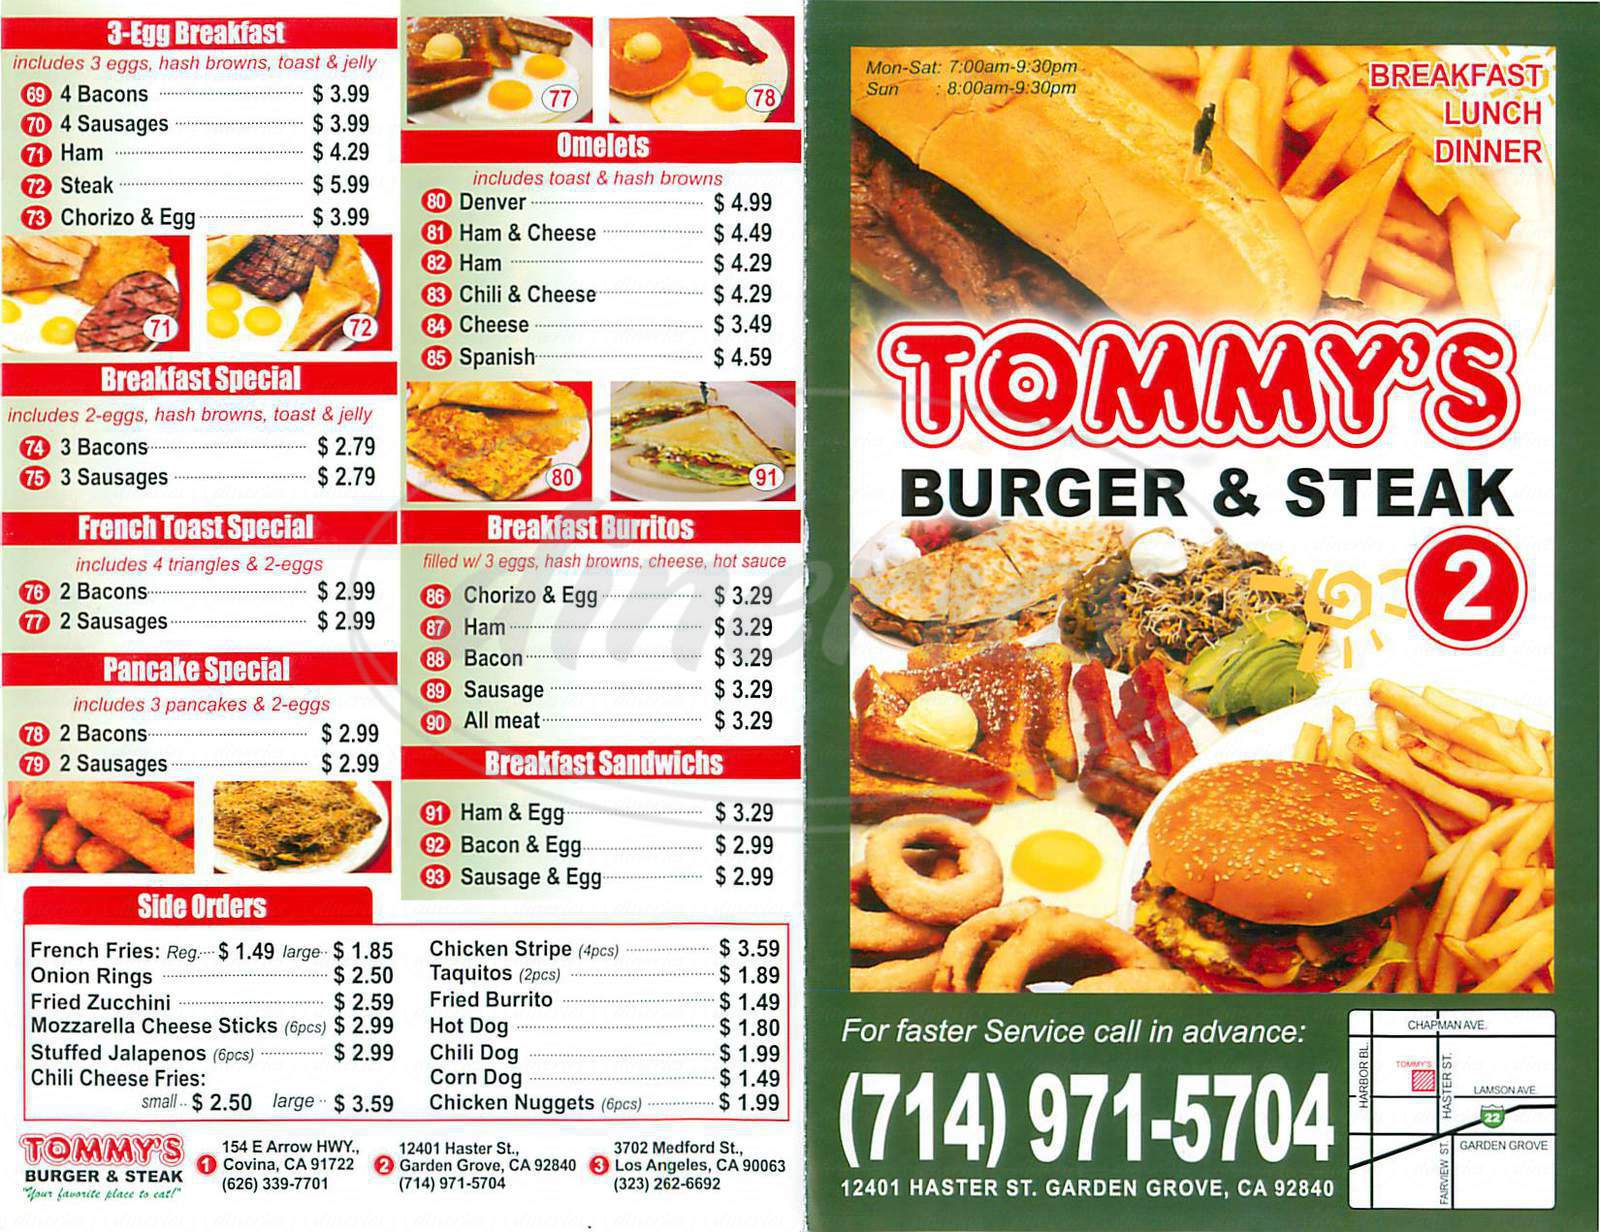 menu for Tommy's Burger & Steak